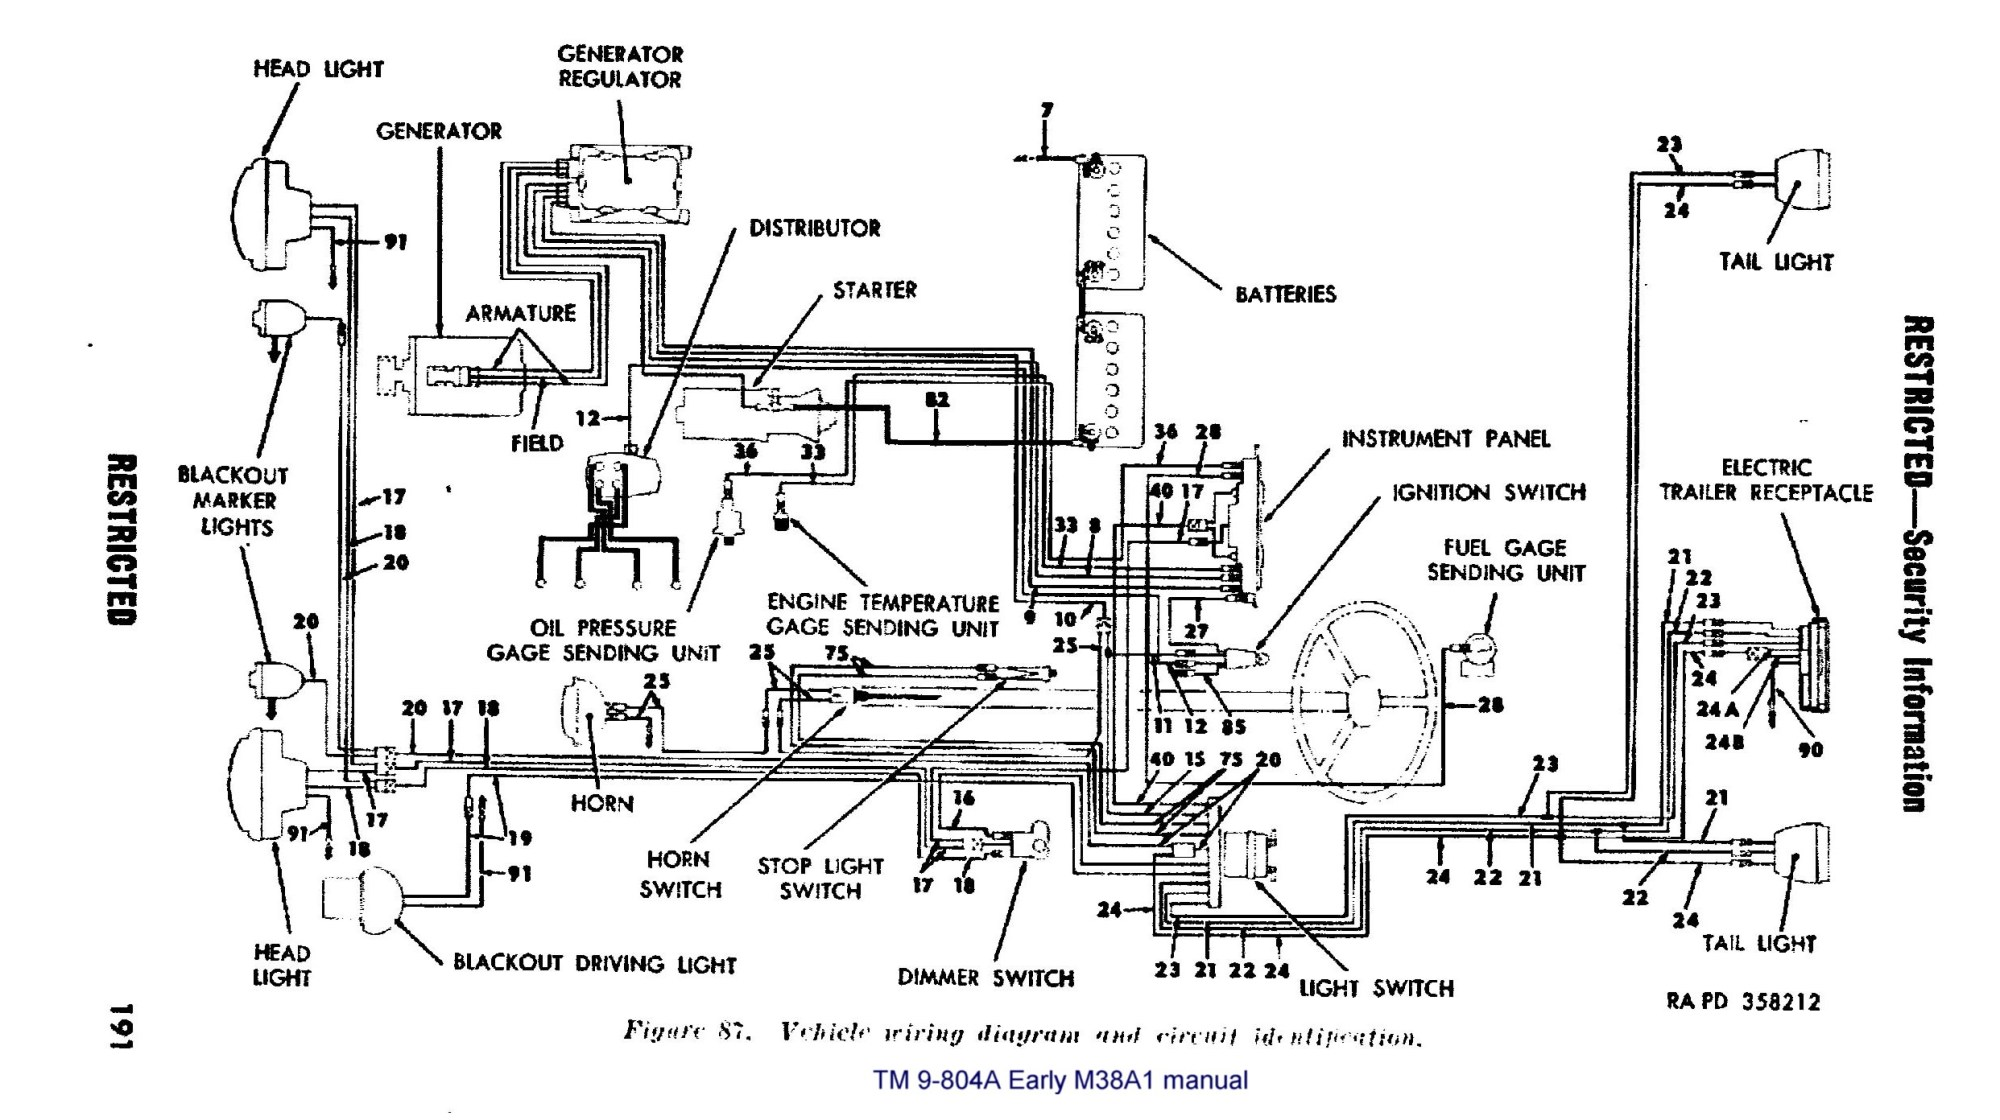 hight resolution of wiring jeep parts wiring diagram data val wiring jeep parts